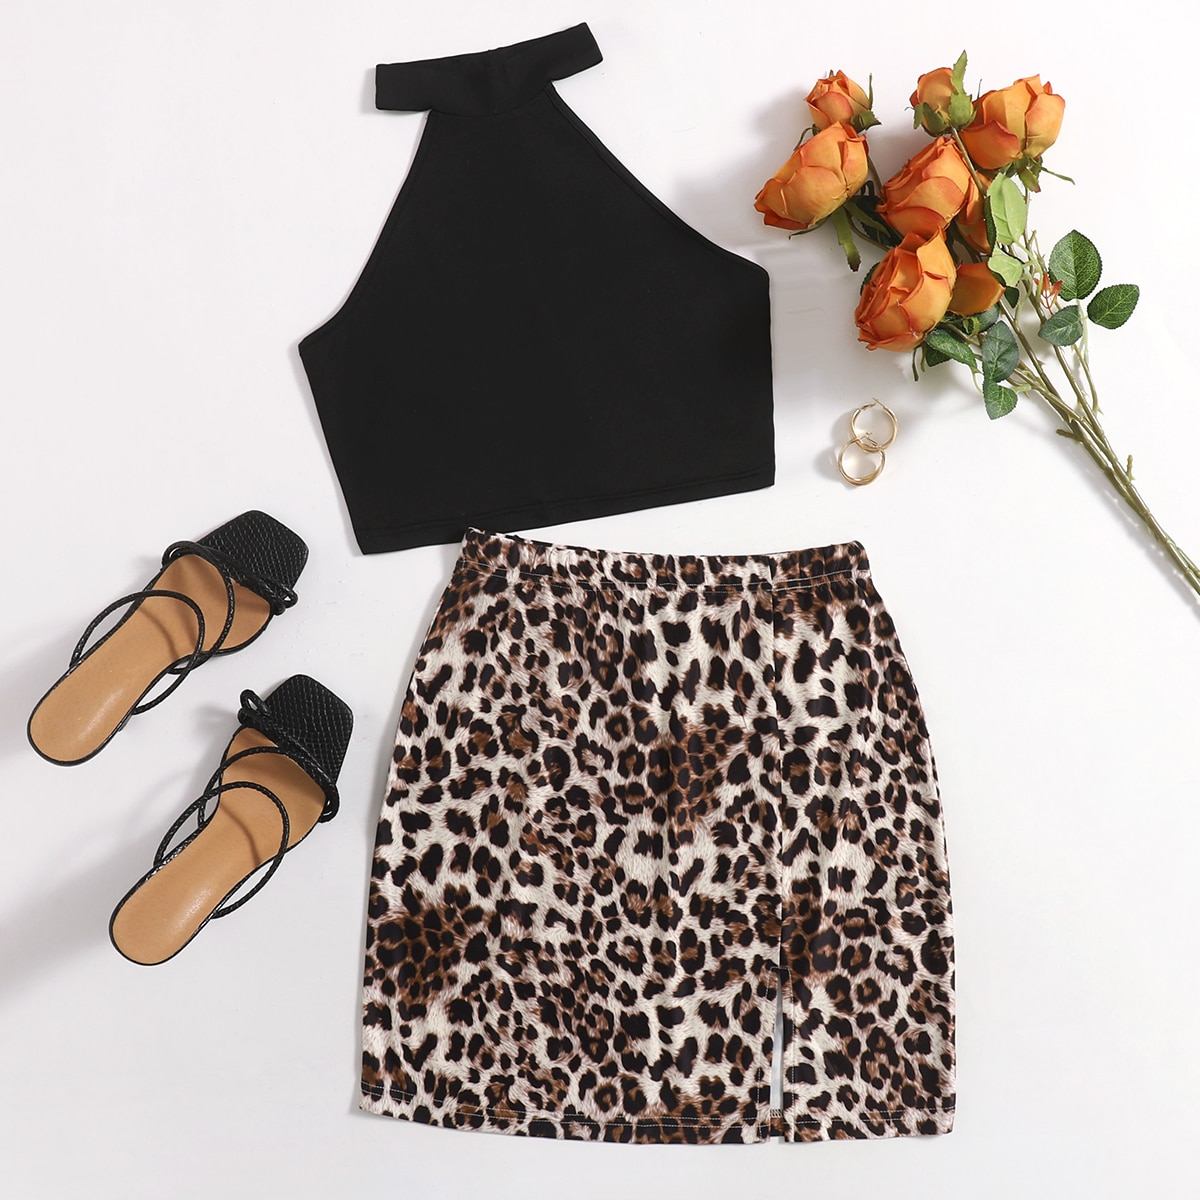 Plus Crop Halter Top With Leopard Bodycon Skirt, SHEIN  - buy with discount